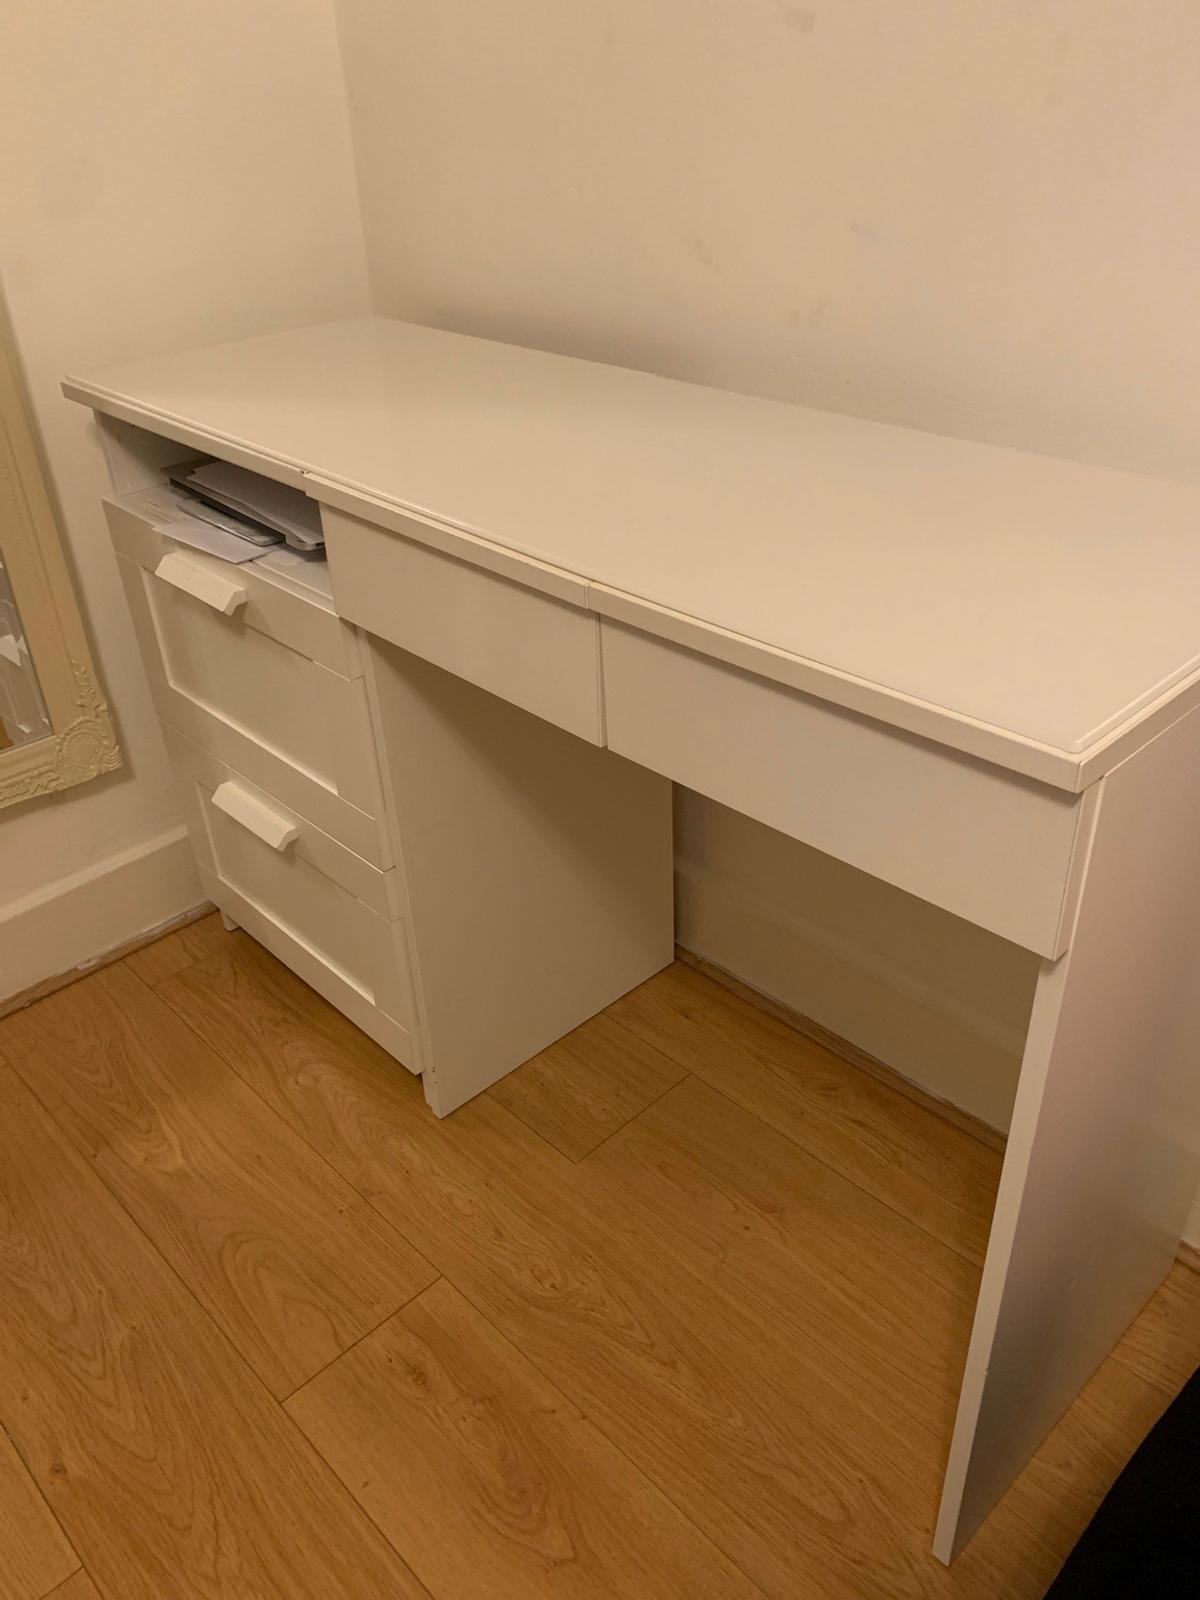 Ikea White Brimnes Dressing Table In W14 Fulham For 90 00 For Sale Shpock